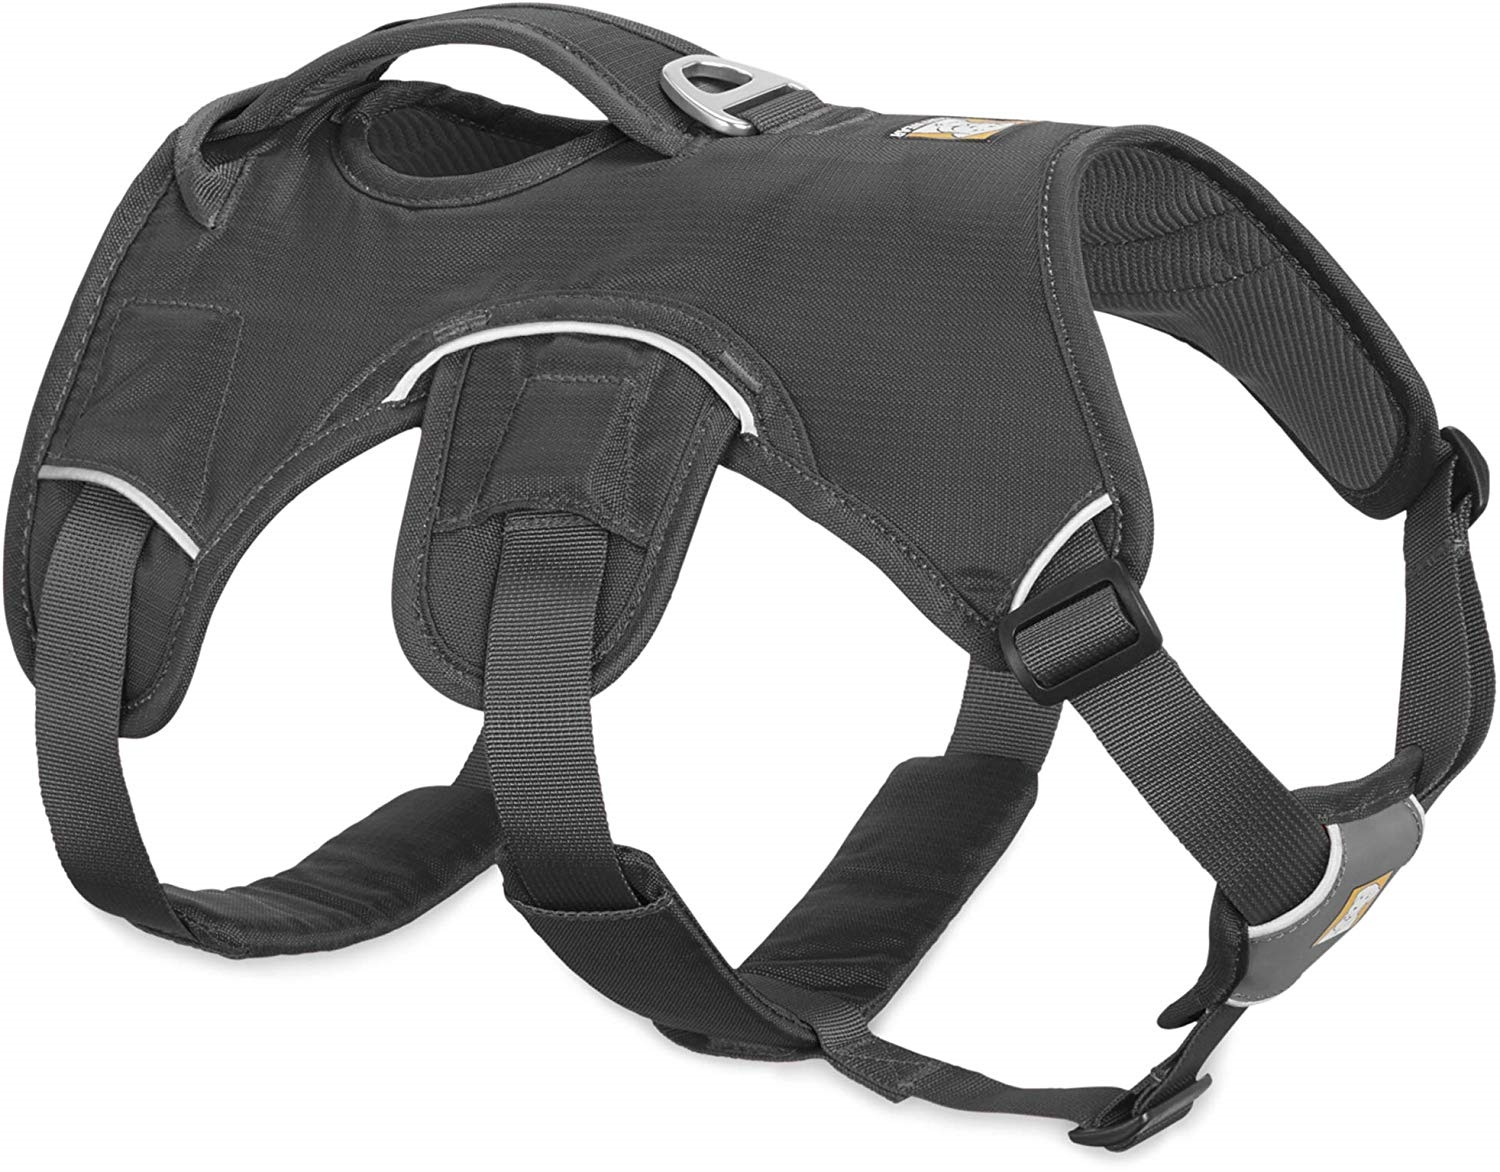 Ruffwear Web Master Supportive Multi-Use Dog Harness, Twilight Gray, X-Small